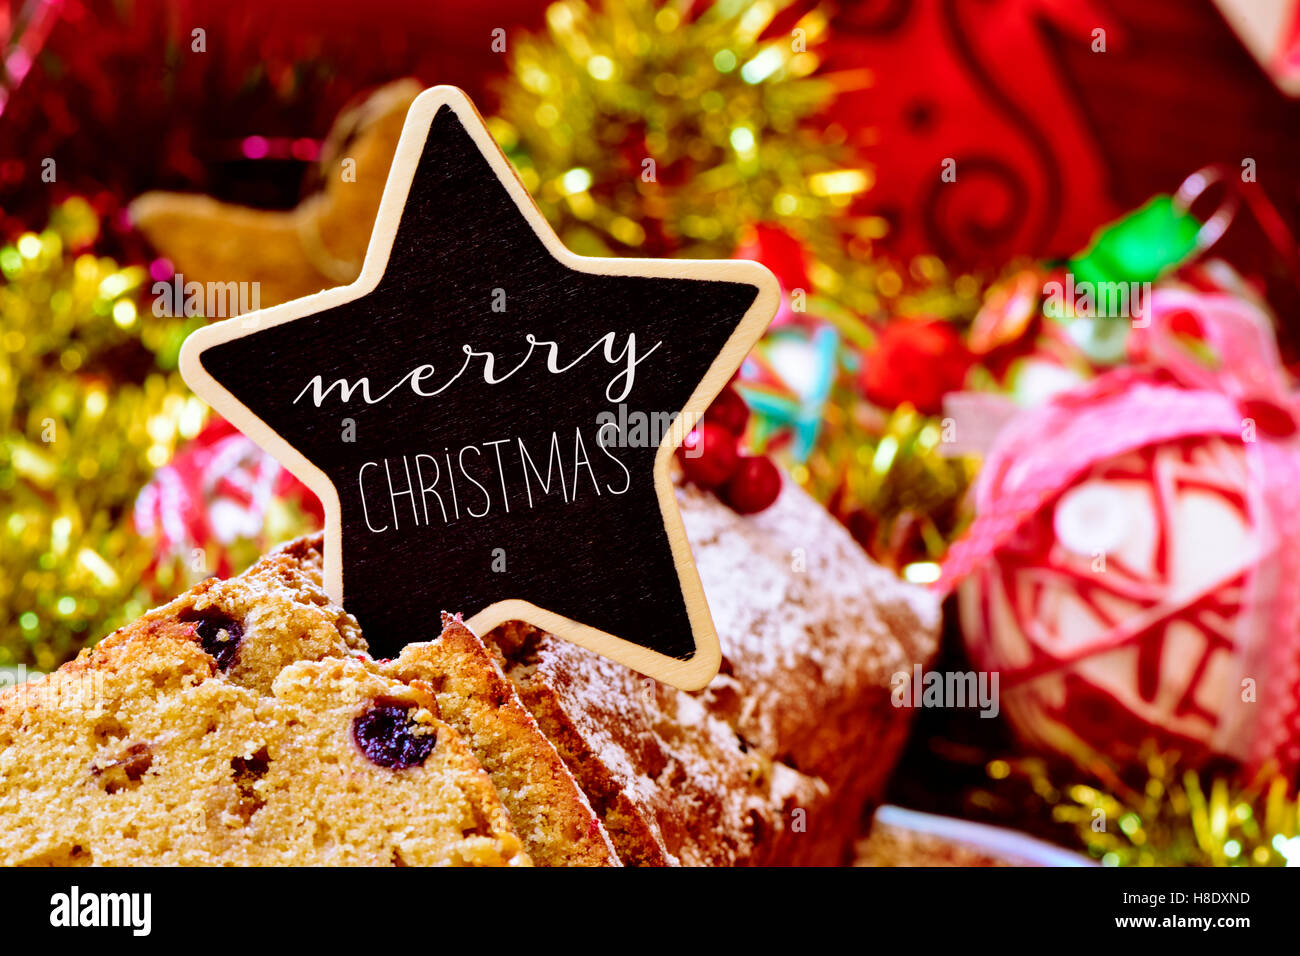 closeup of a fruitcake topped with a star-shaped signboard with the text merry christmas, on a table full of christmas Stock Photo